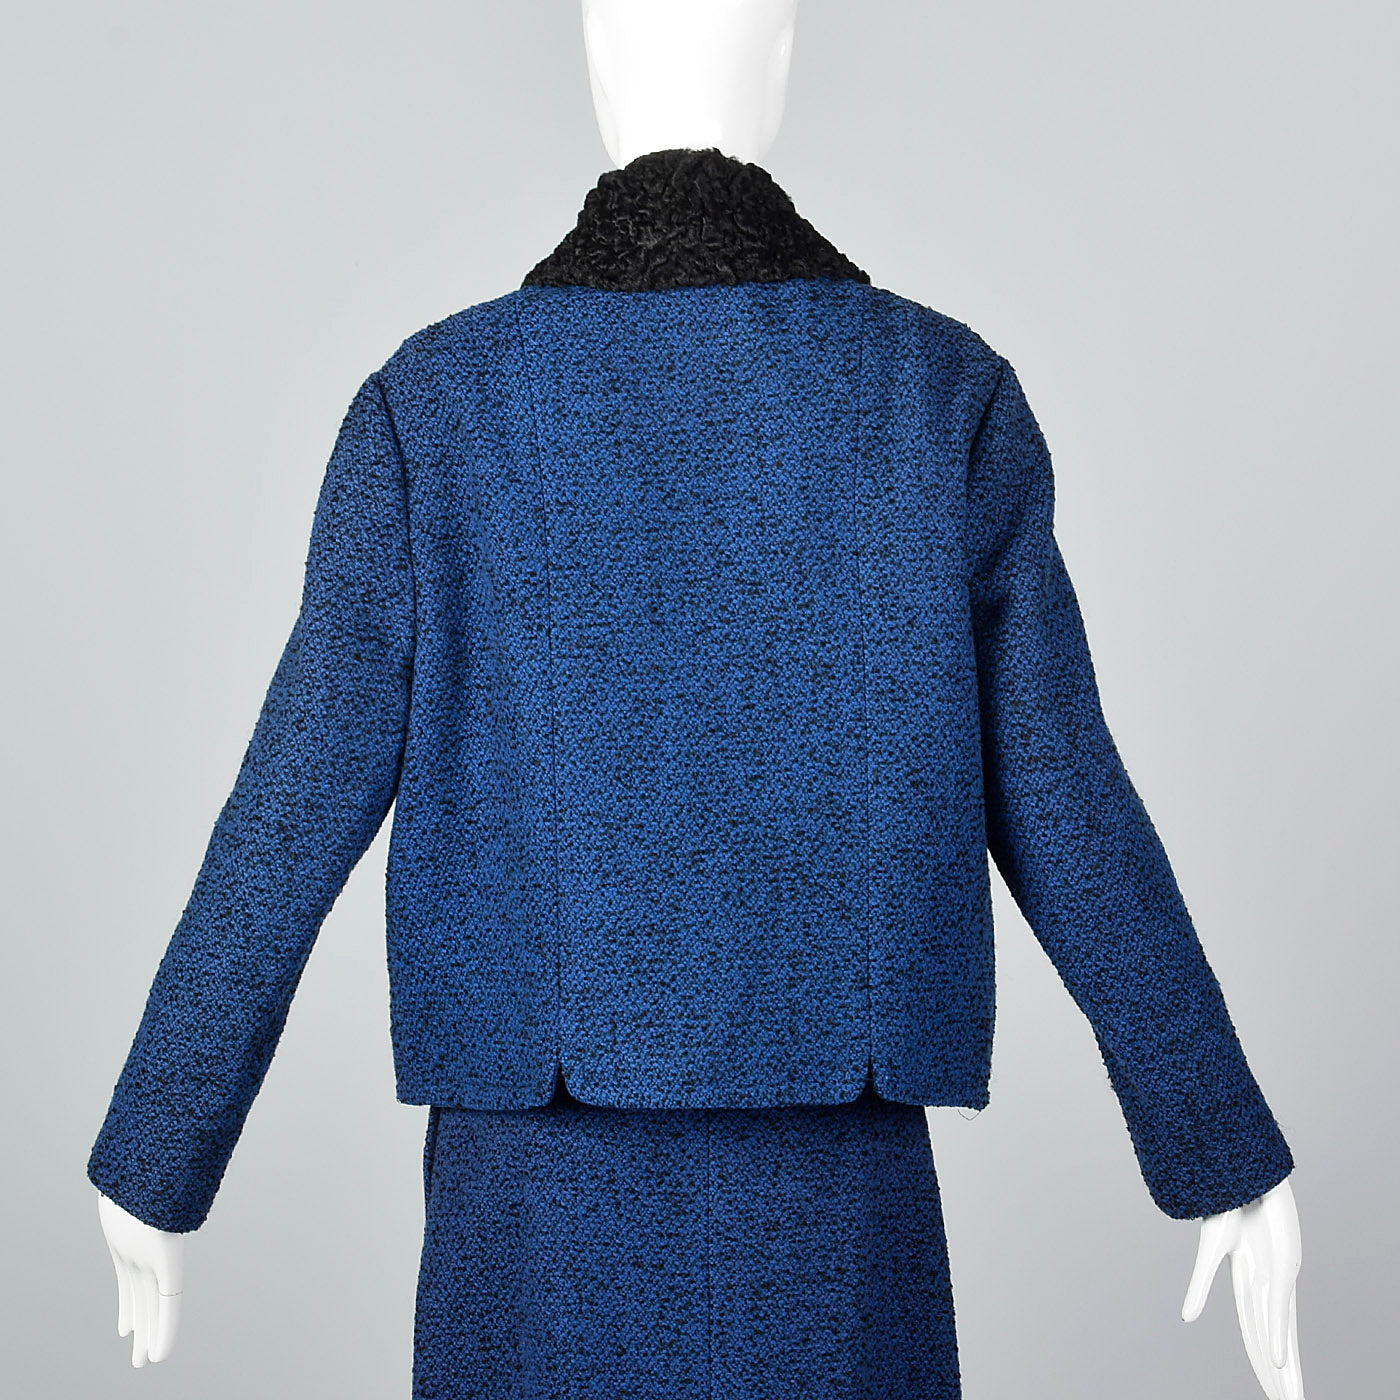 1960s Blue Tweed Skirt Suit with Persian Lamb Trim